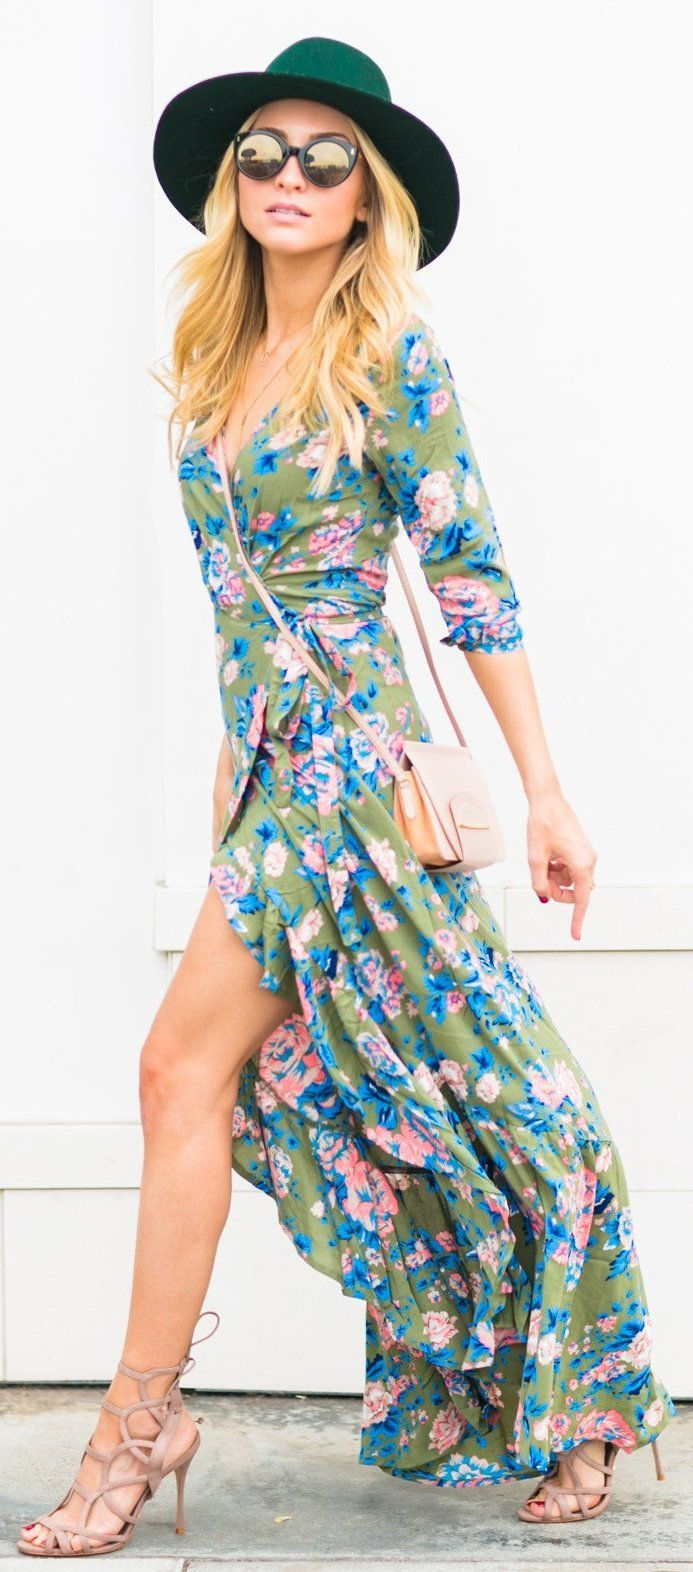 Green Hat / Green Flower Print Maxi Dress / Camel Sandals